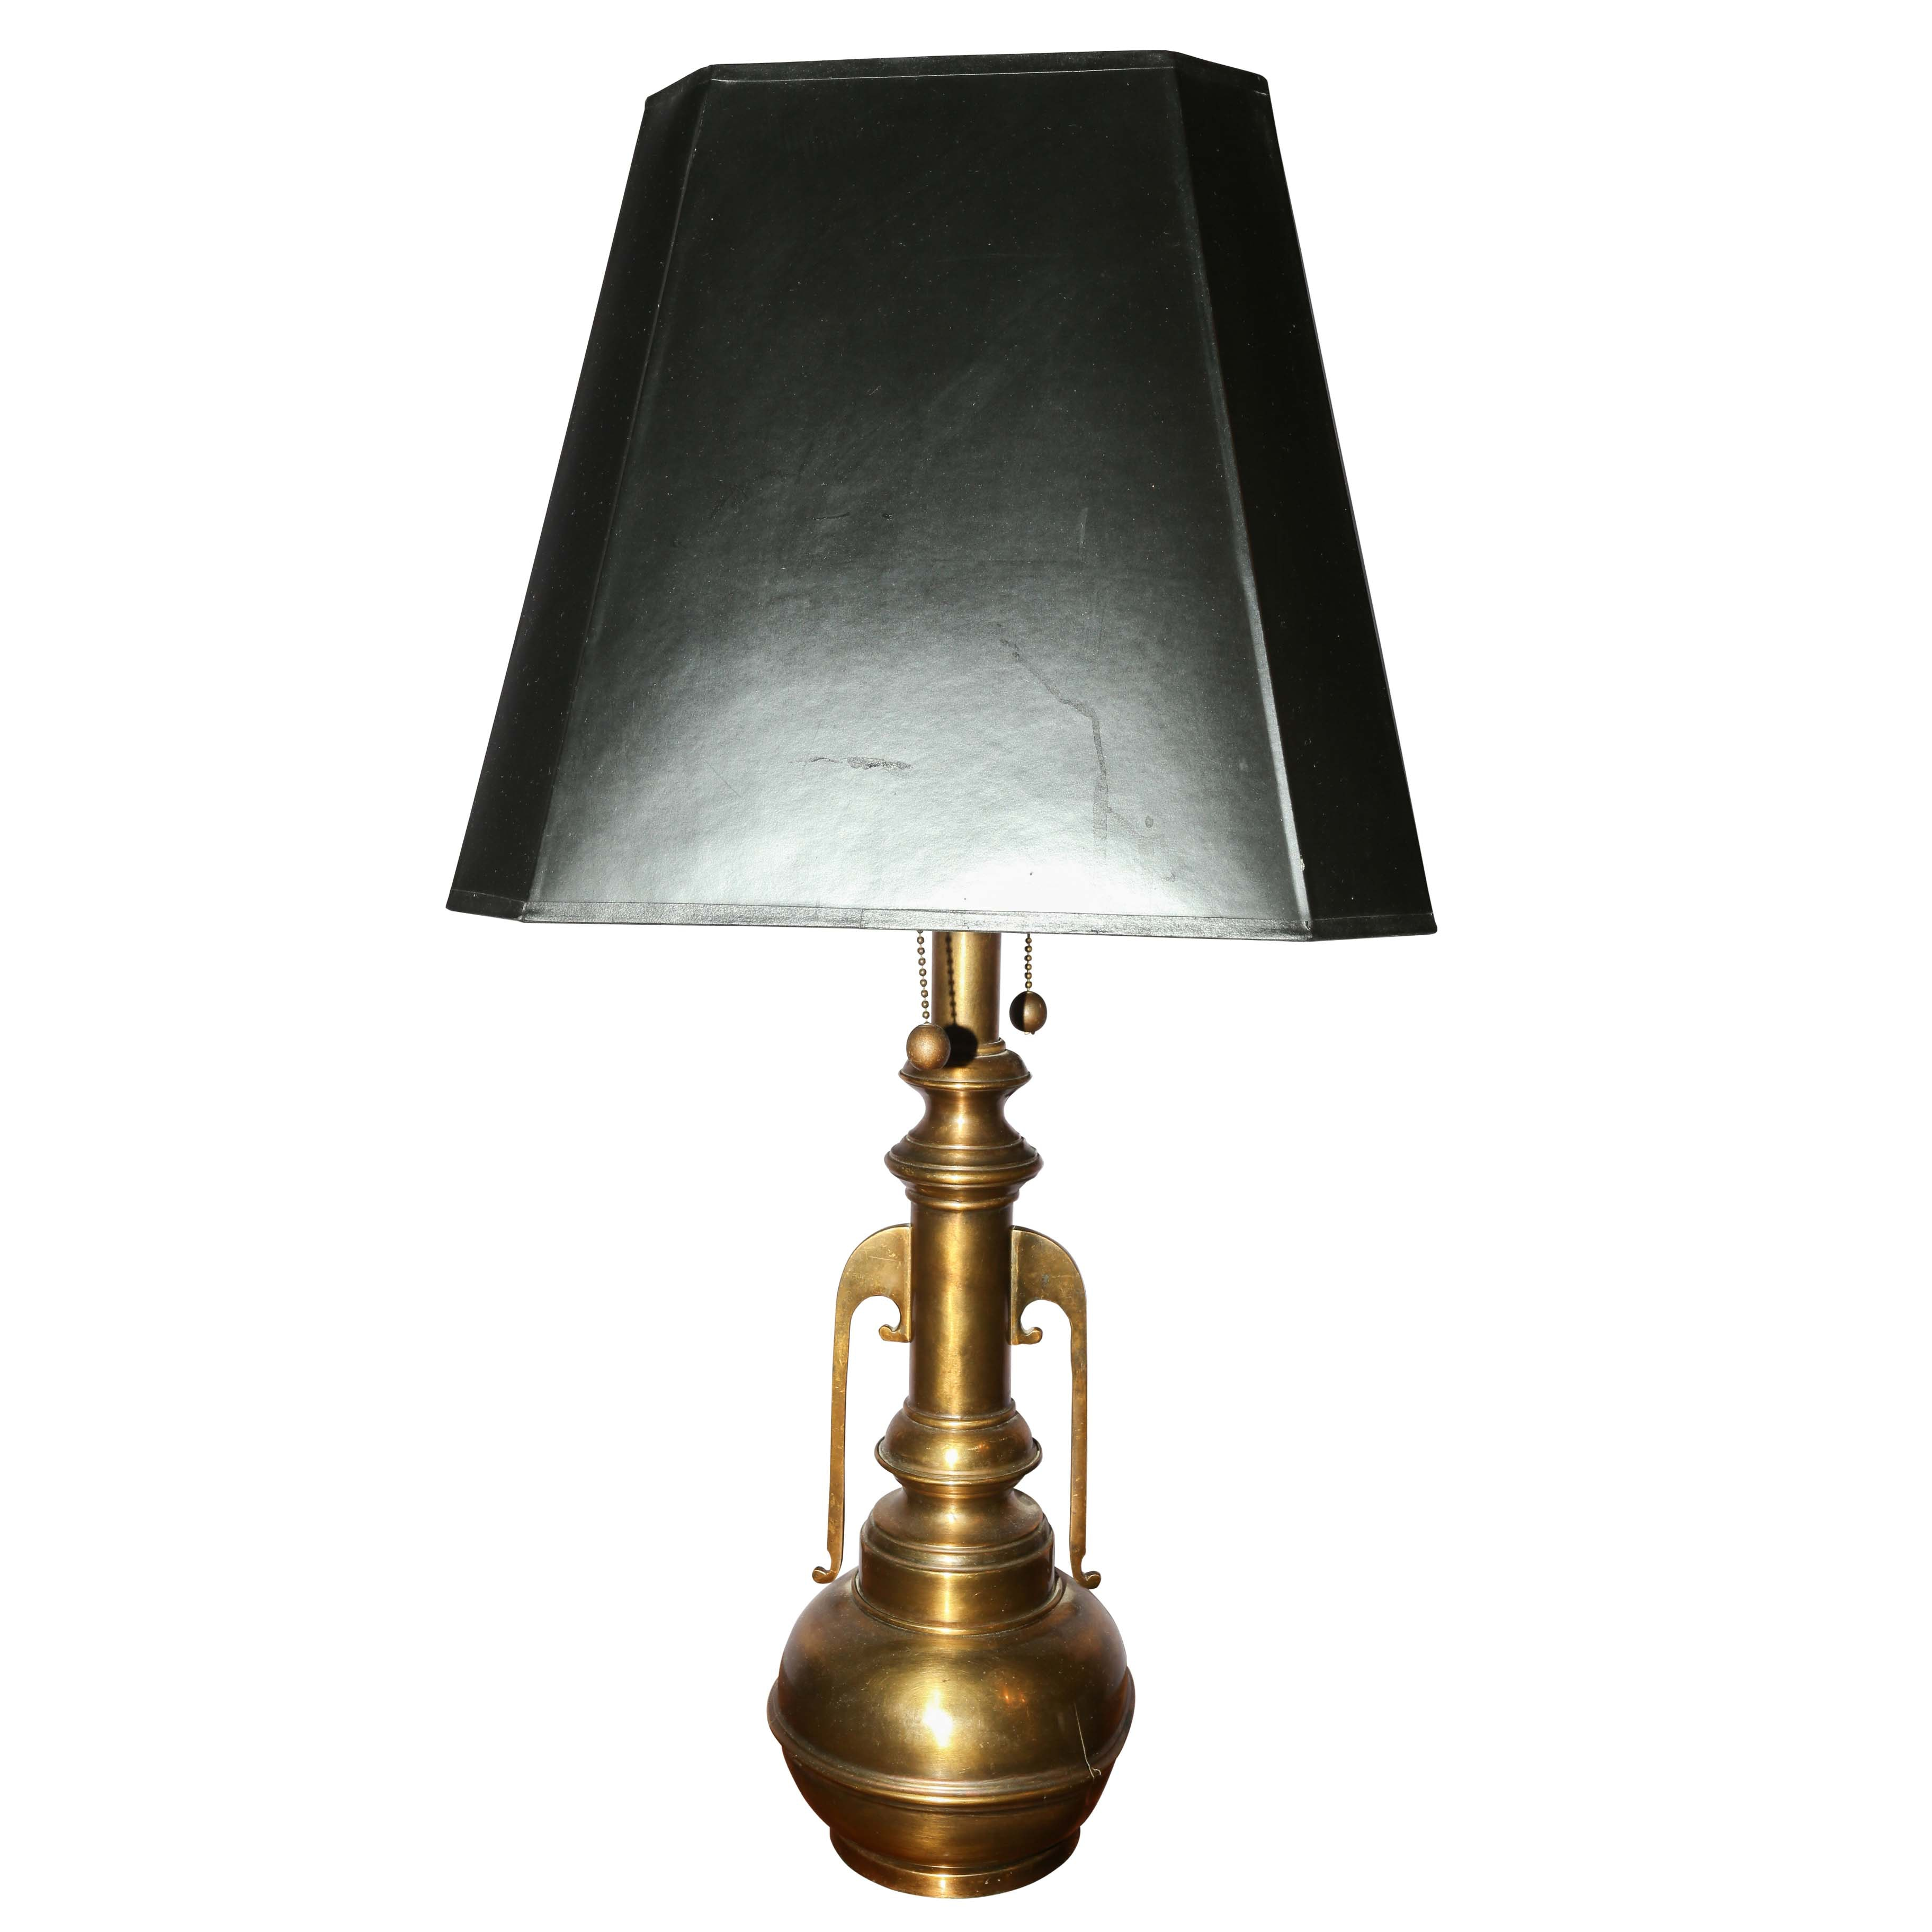 Brass Table Lamp With Black Shade Ebth